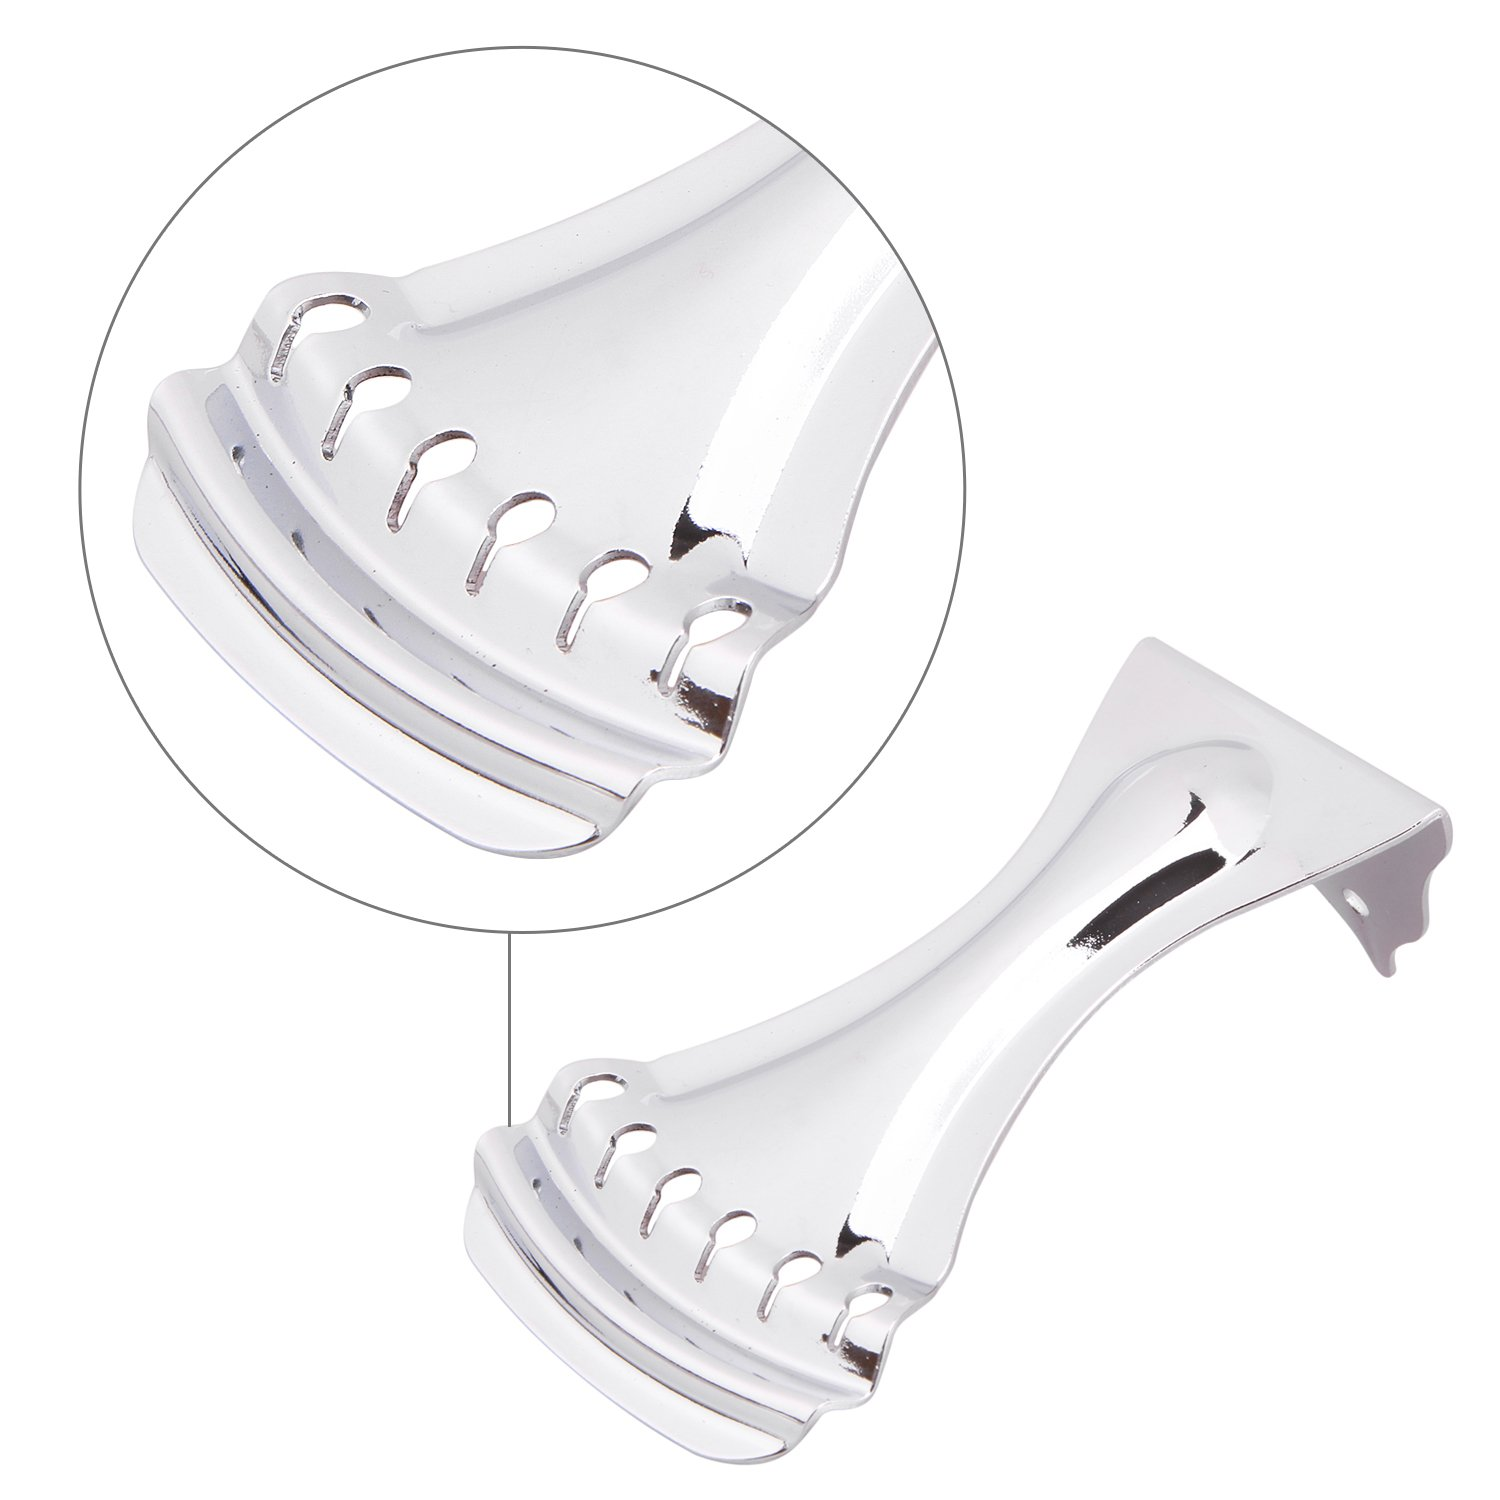 Dobro Tailpiece Chrome Zinc Alloy Tailpiece for 6 Strings Dobro Guitar by sunflower (Image #5)